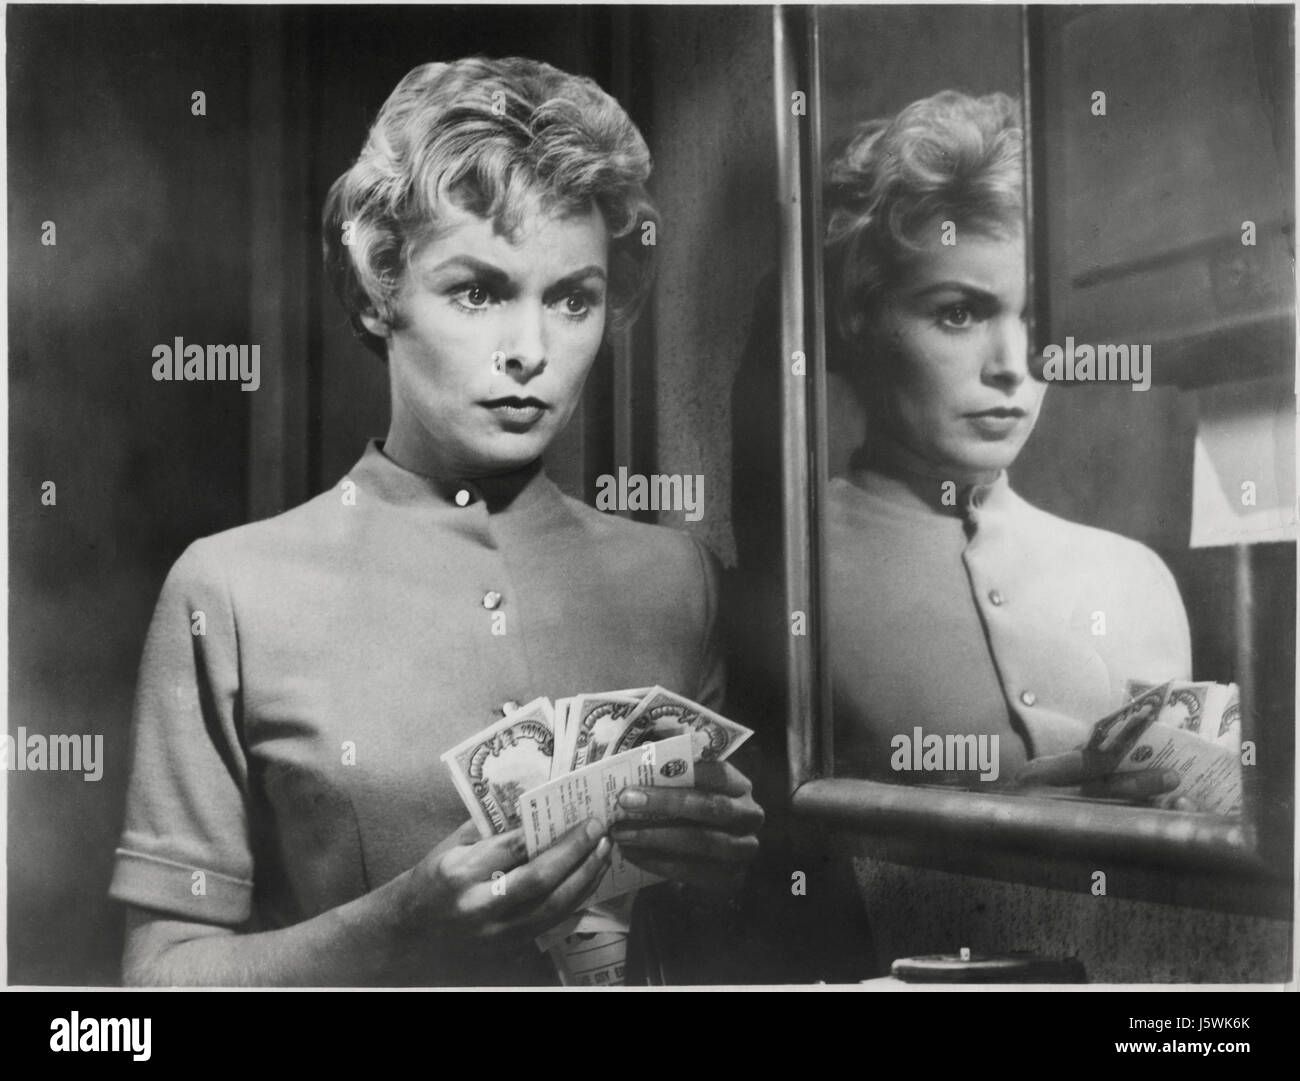 psycho movie 1960 essay Film essay that shows how the tv series bates motel has recreated hitchcock's  psycho, by comparing scenes of both ▽ more information and.